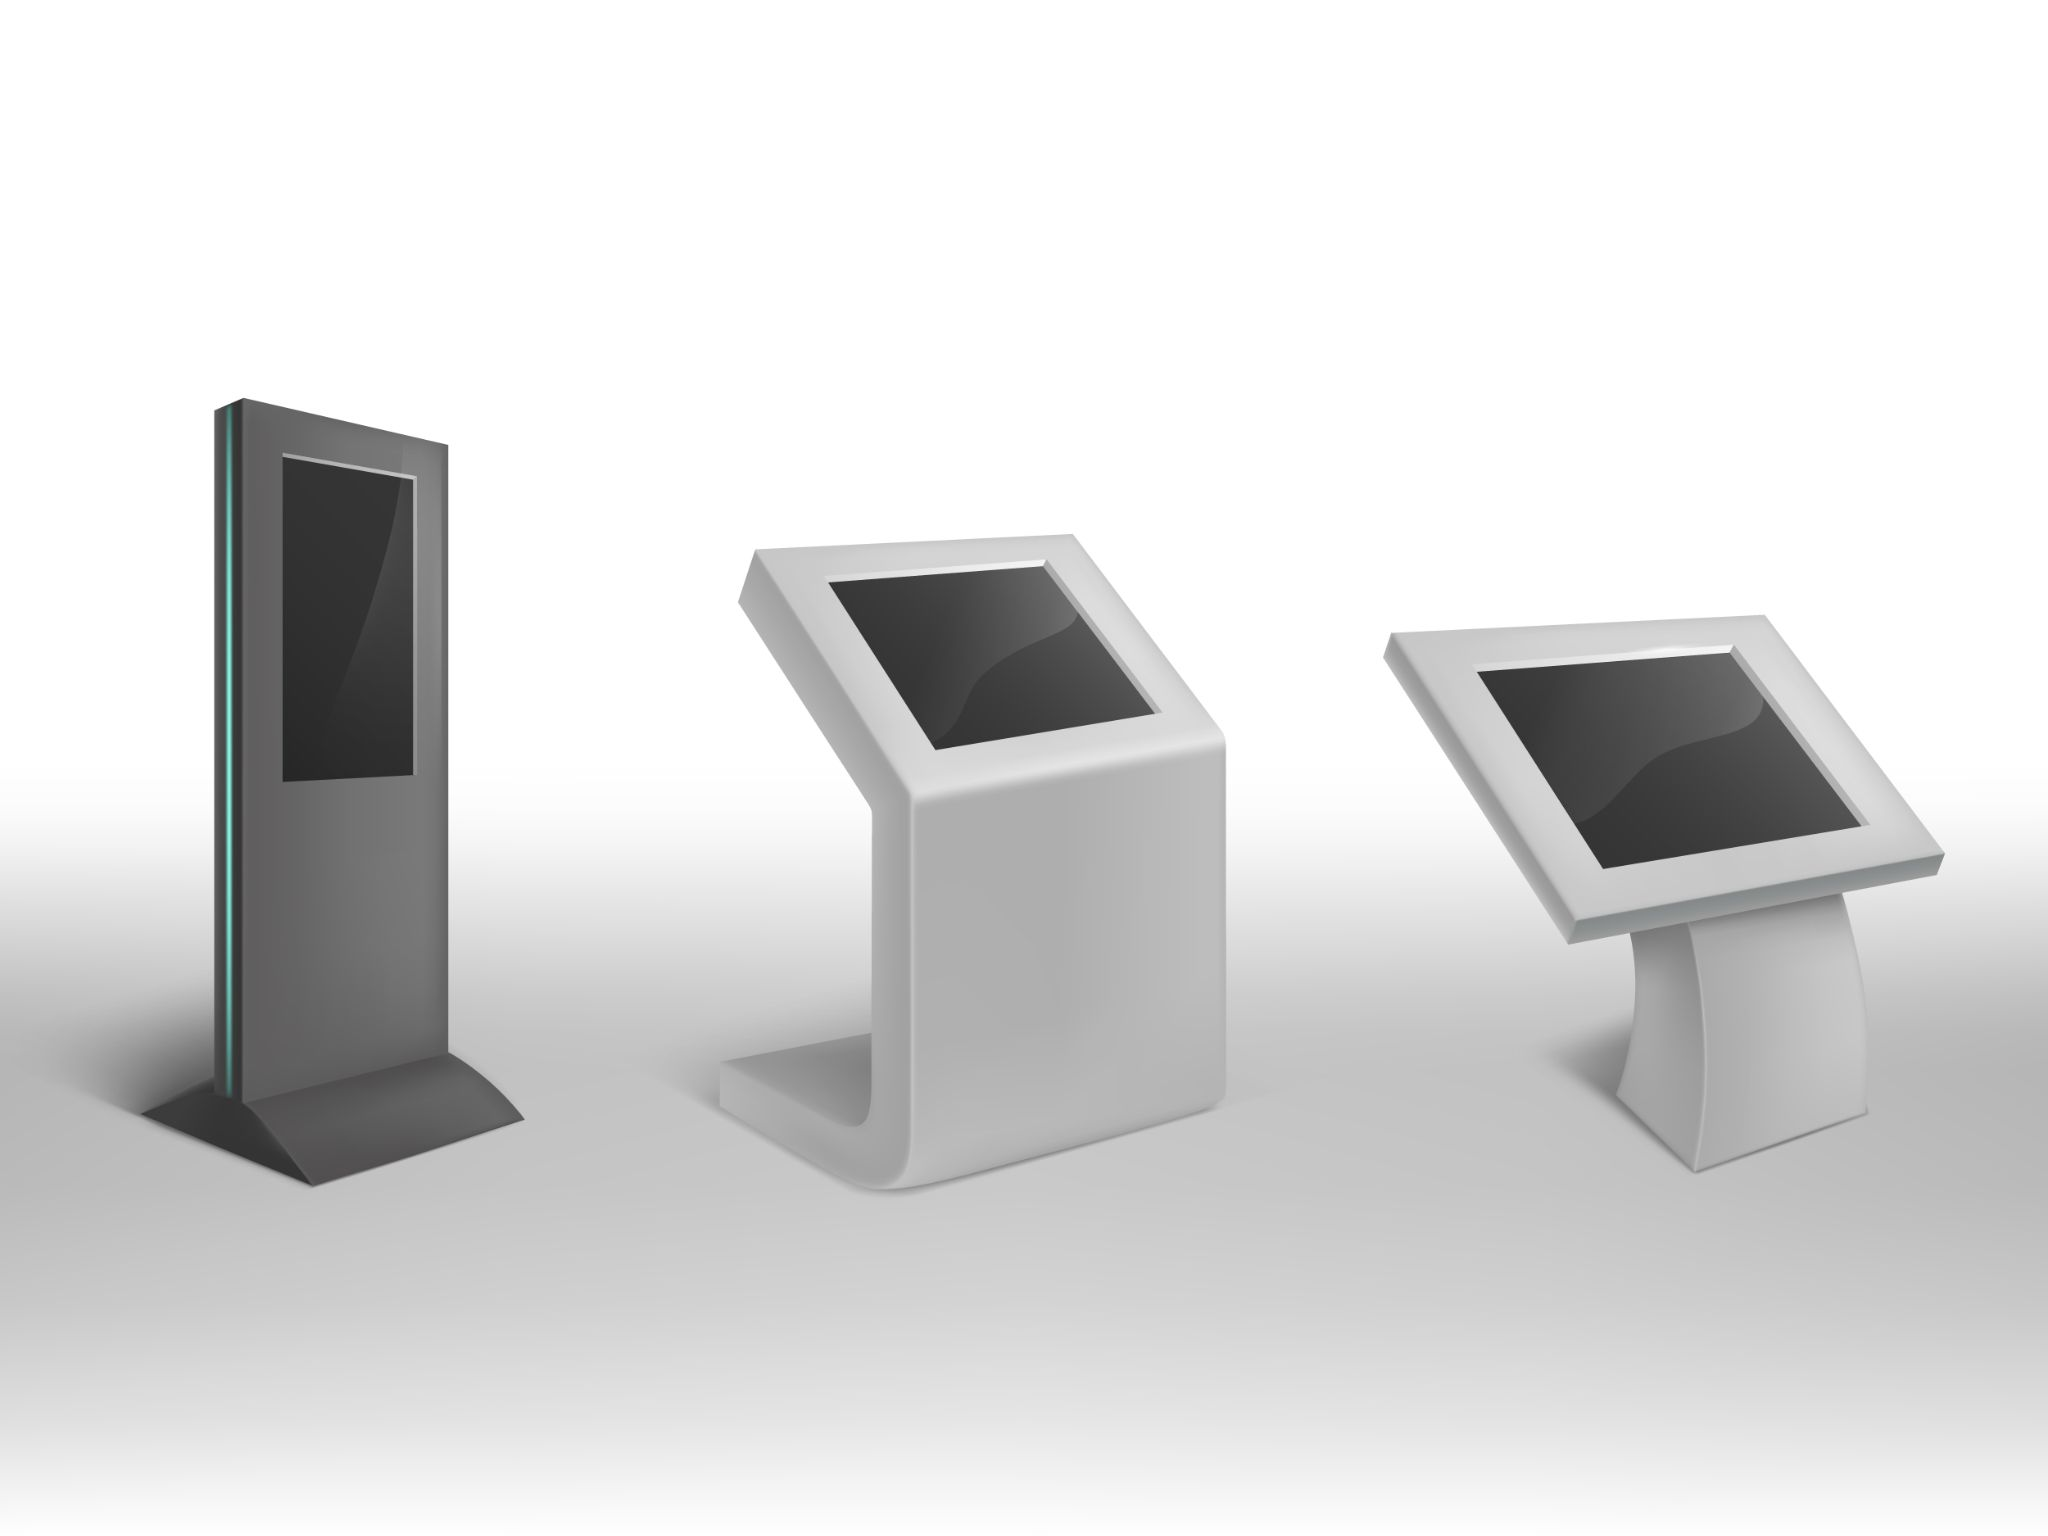 Different screen sizes of digital kiosks. Source: Freepik. Infrared vs Projected Capacitive - Rev Interactive